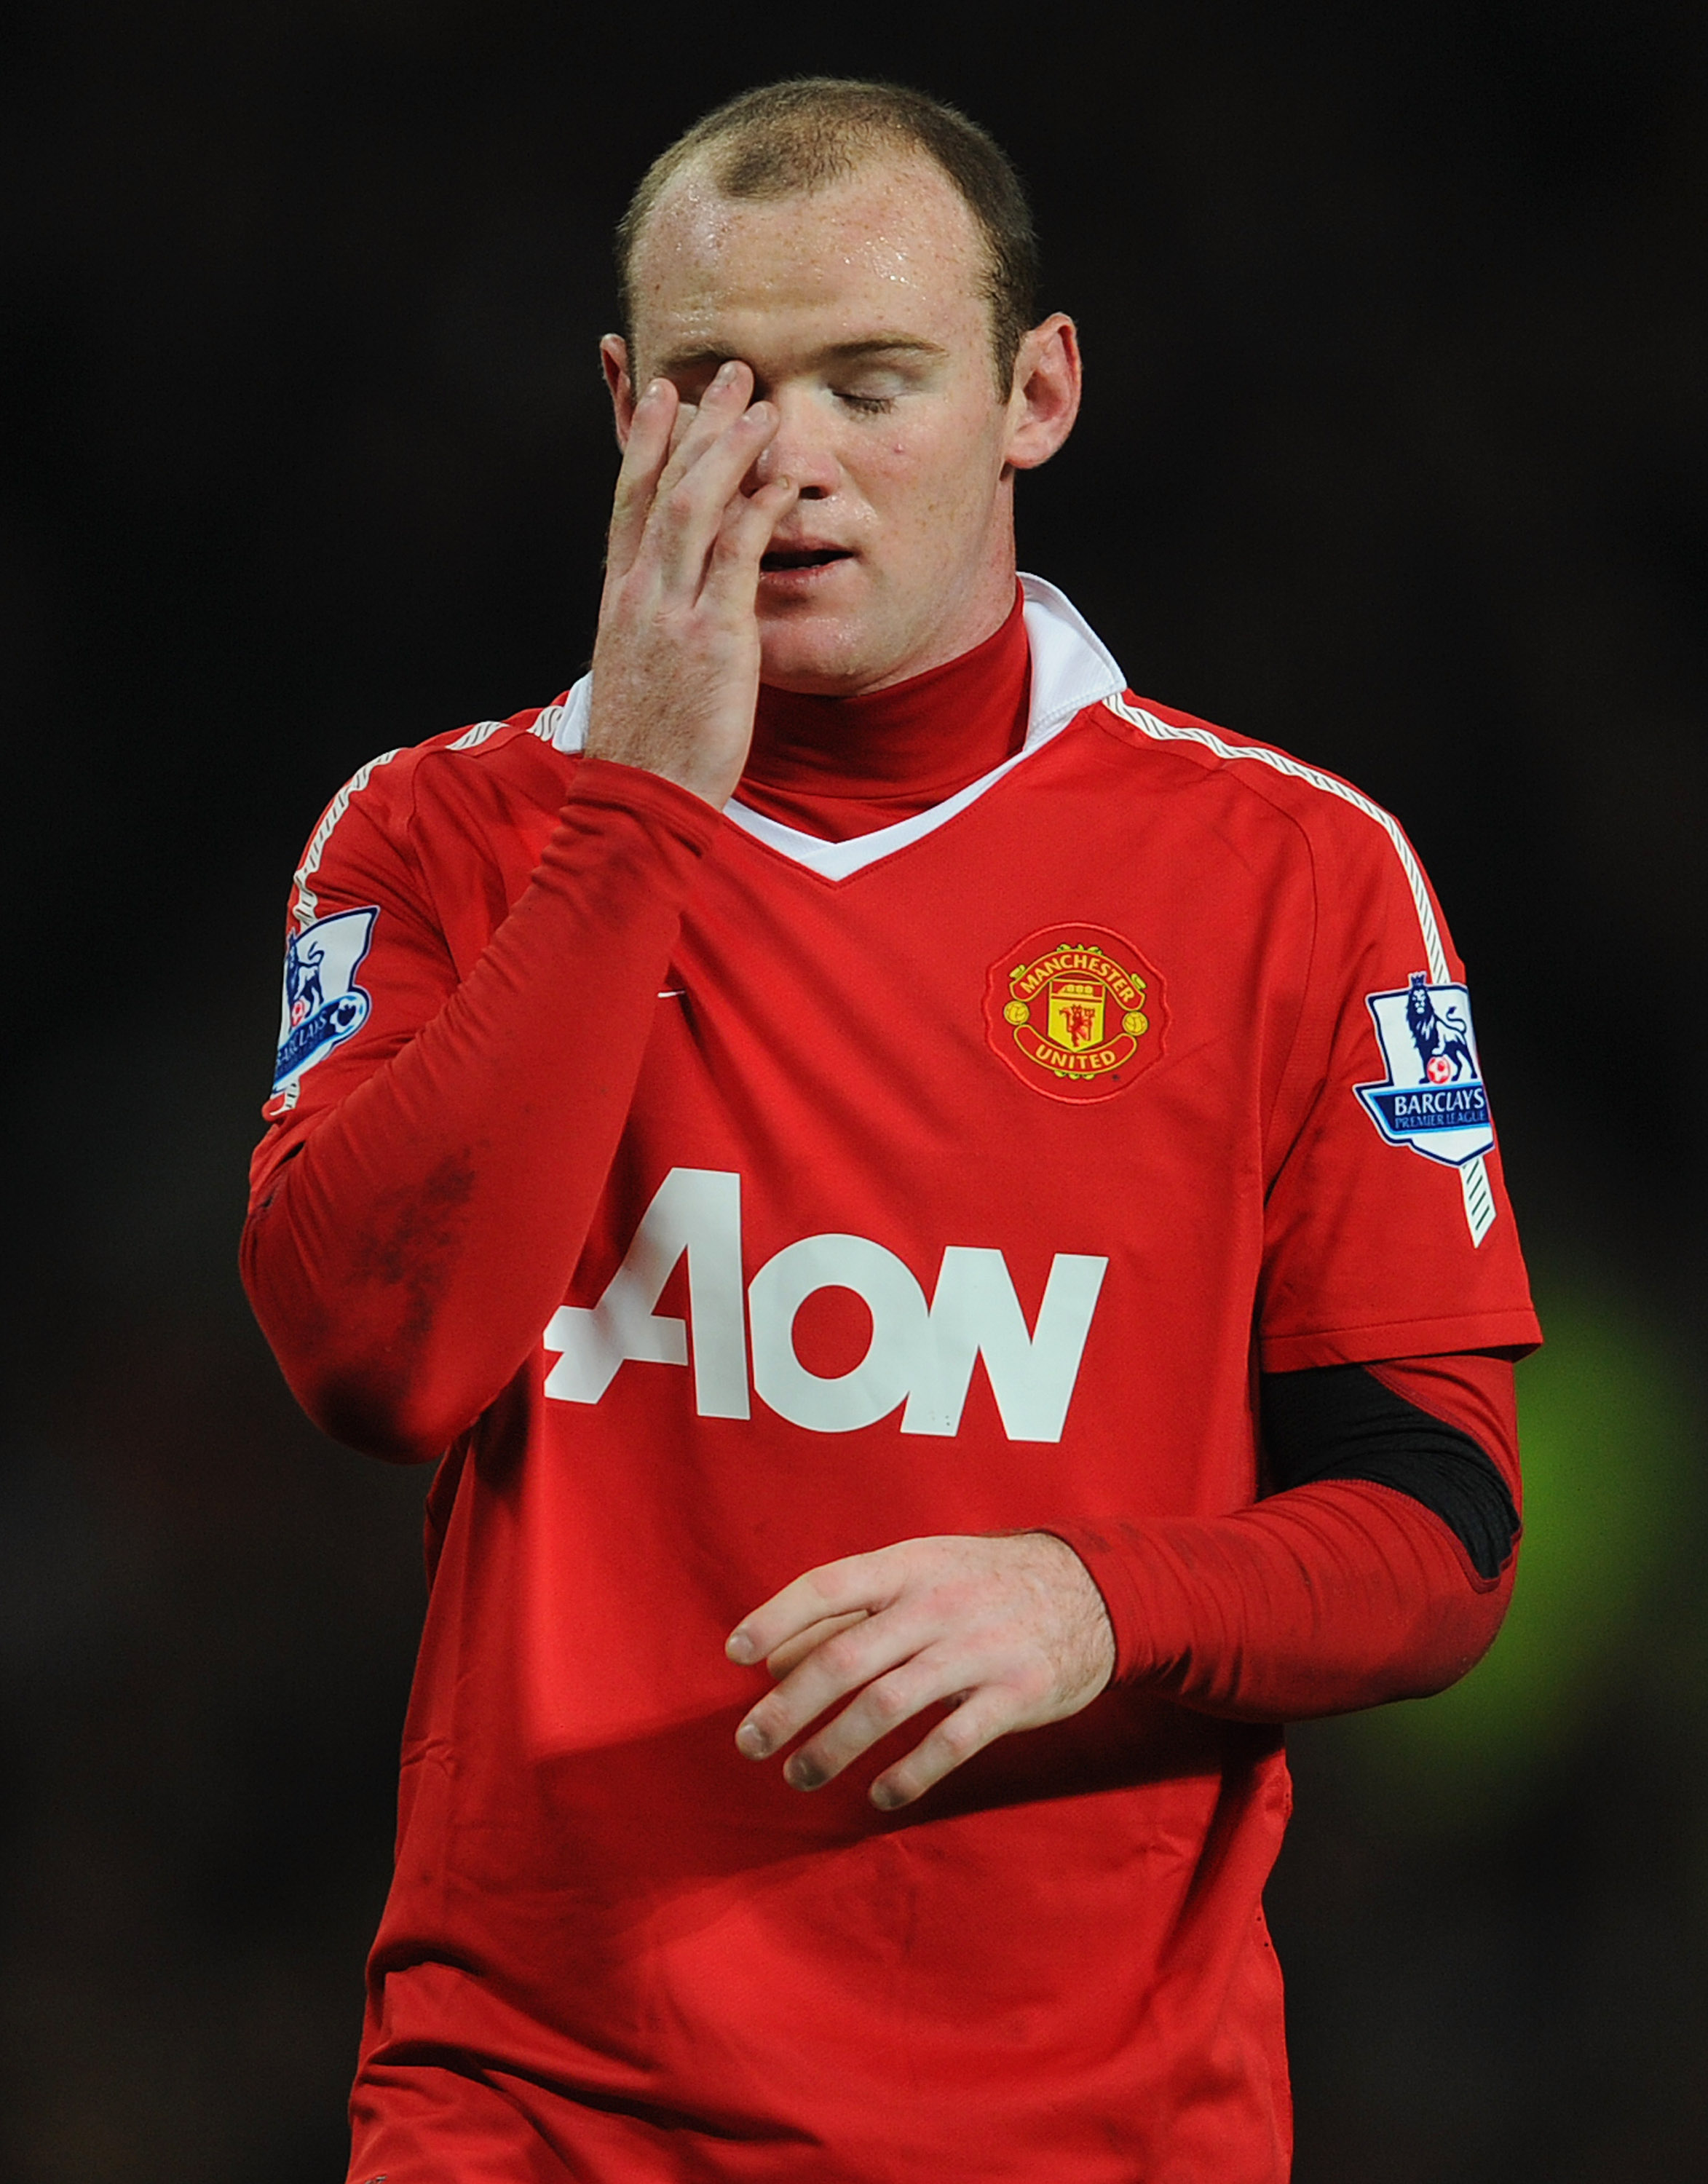 MANCHESTER, ENGLAND - NOVEMBER 20:  Wayne Rooney of Manchester United on during the Barclays Premier League match between Manchester United and Wigan Athletic at Old Trafford on November 20, 2010 in Manchester, England.  (Photo by Michael Regan/Getty Imag